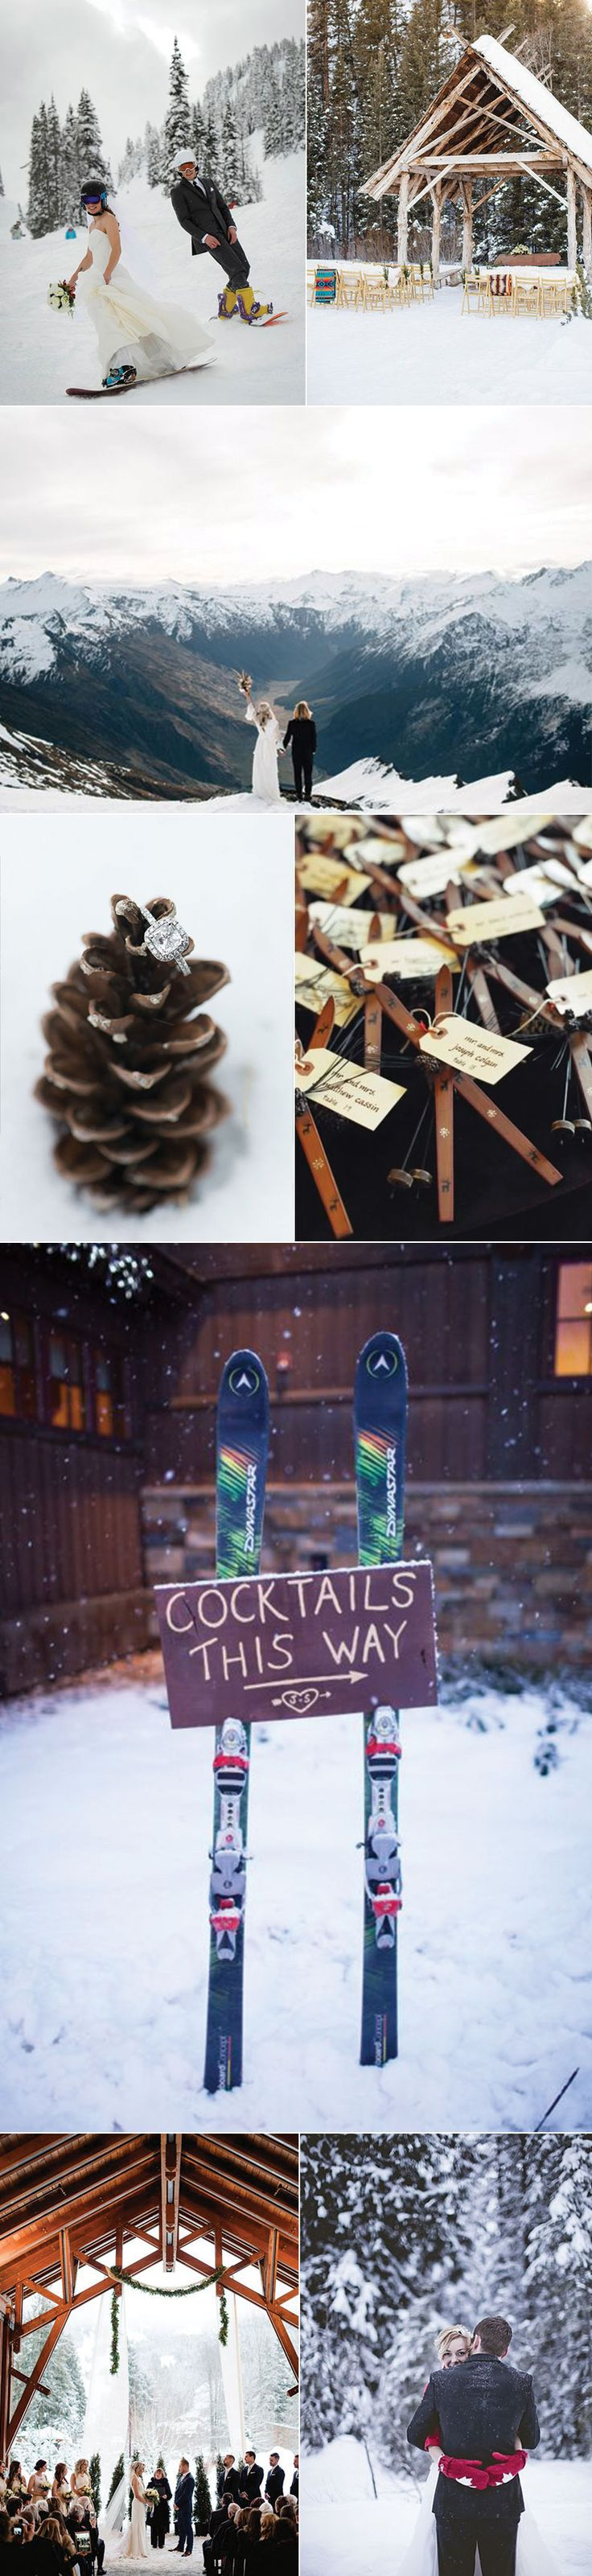 Winter Wedding Ideas for Snow Boarders and Skiers. Ski Lodge Wedding Ideas.